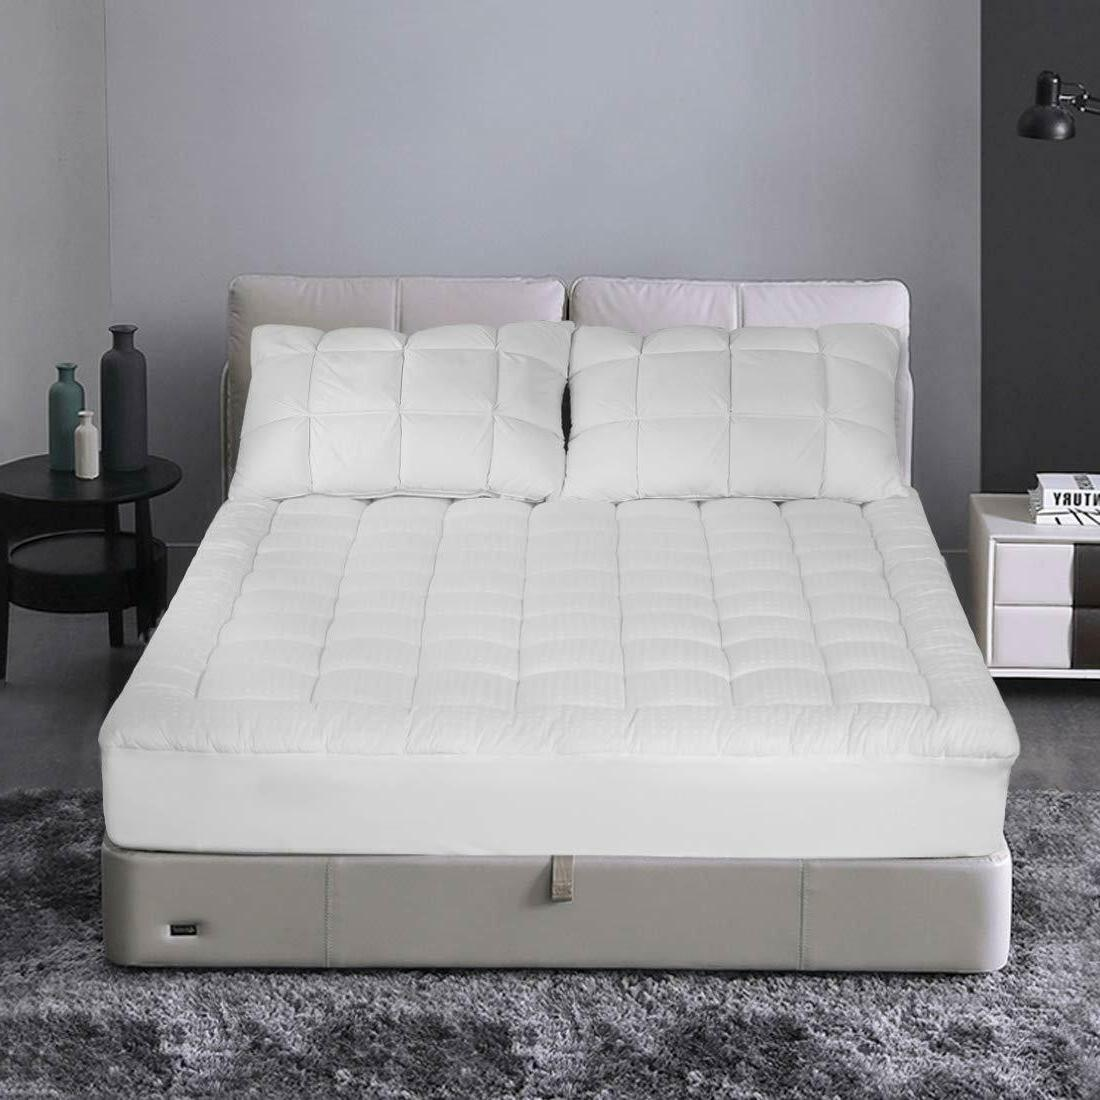 Pillow Top Mattress Queen Size Bed Pad Soft Cooling